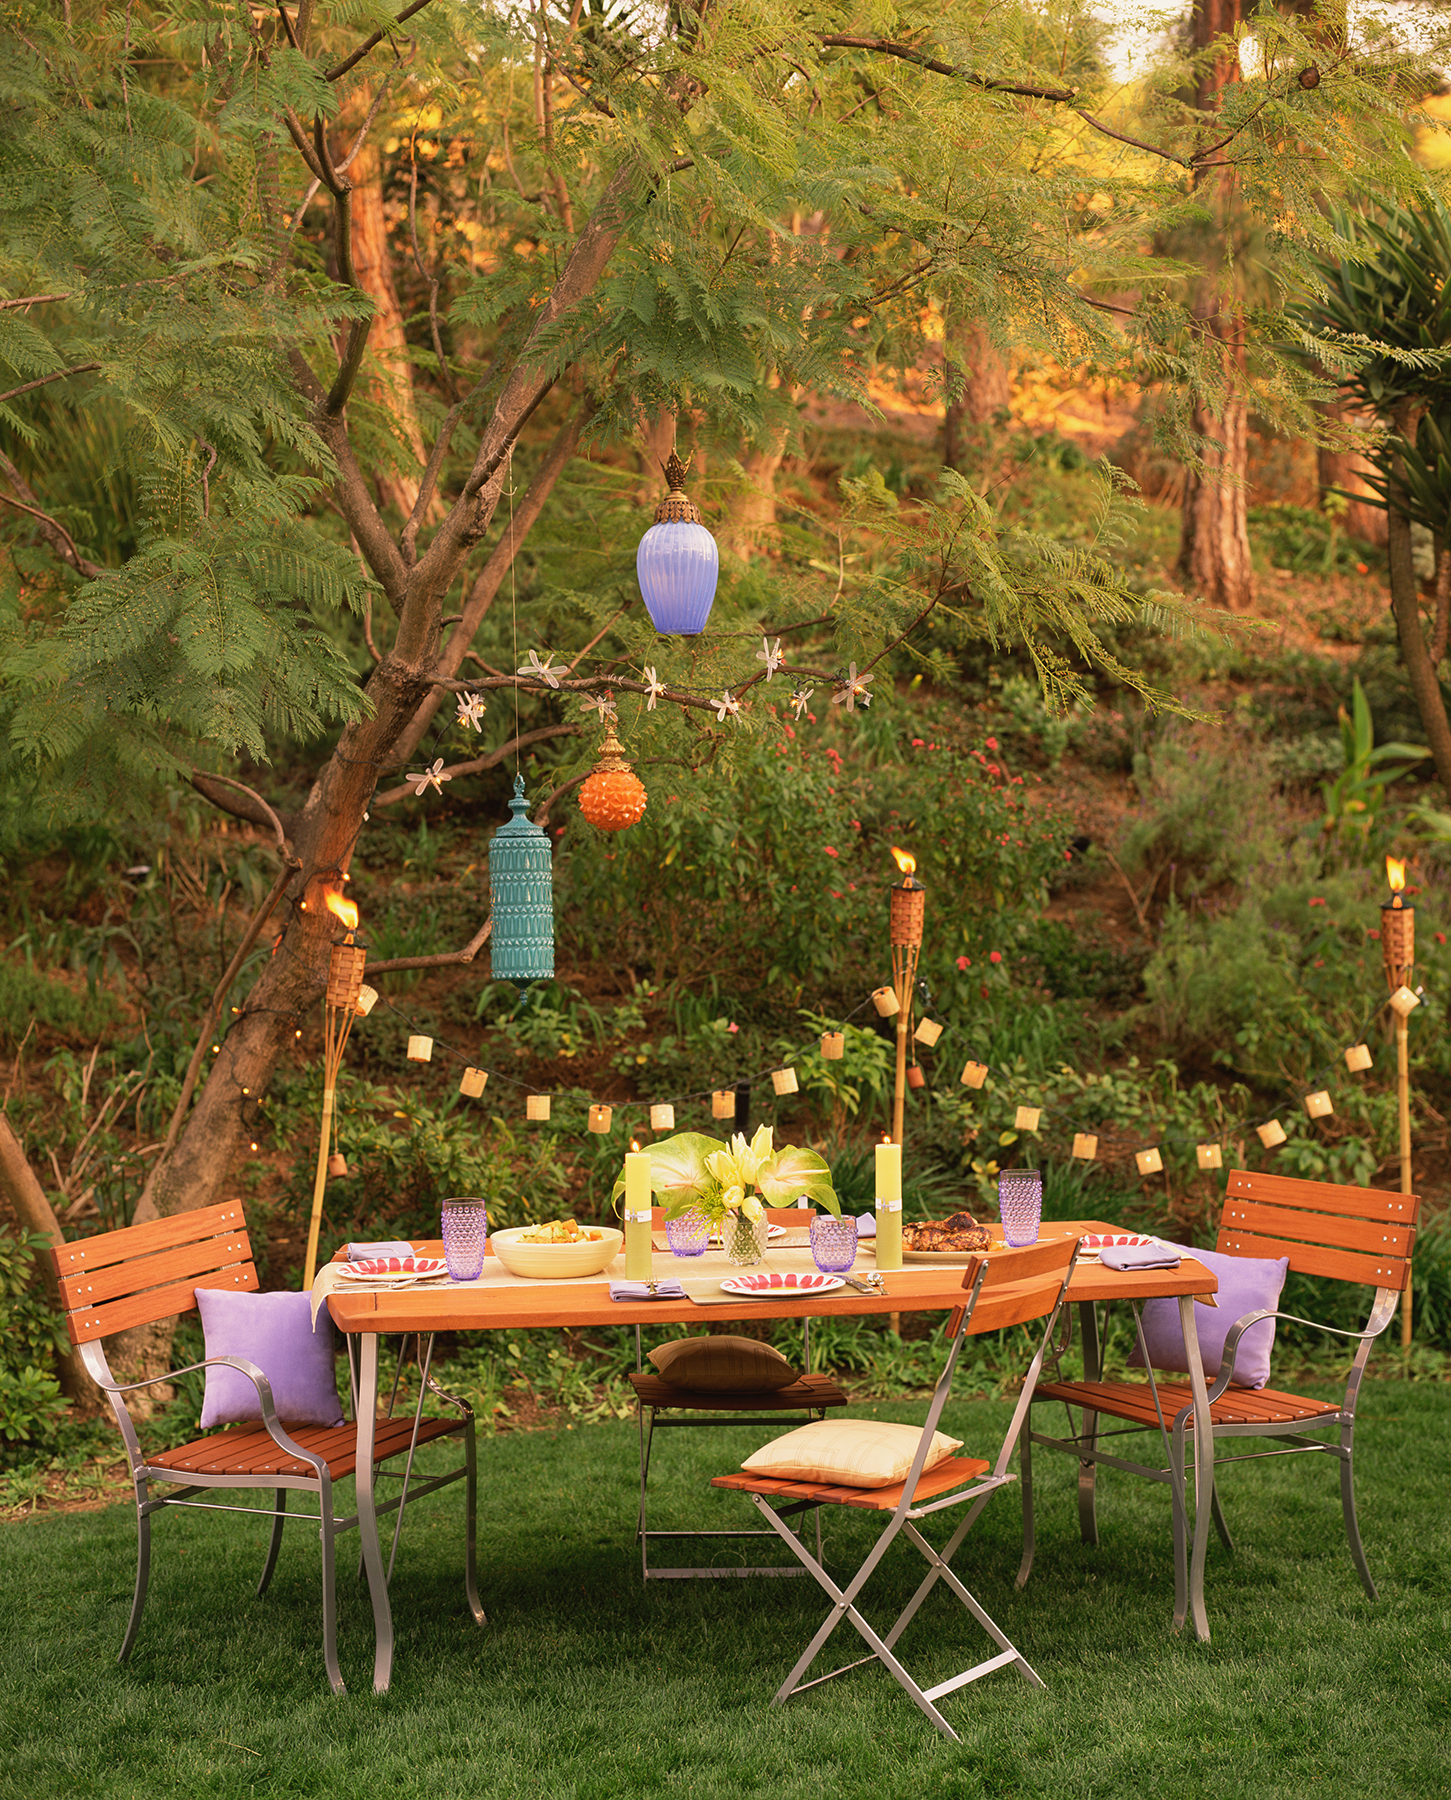 9 Outdoor Party Ideas for an Effortless Backyard Gathering  Real